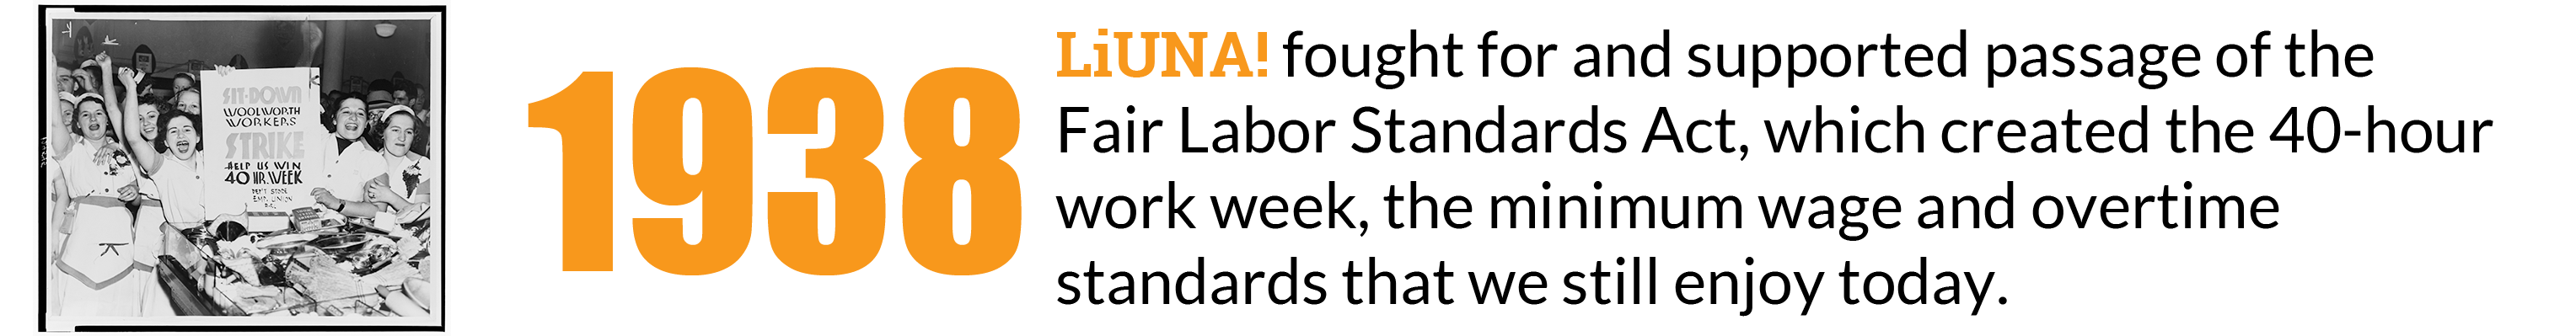 1938: LIUNA fought for and supported passage of the Fair Labor Standards Act, which created the 40-hour work week, the minimum wage and overtime standards that we still enjoy today.